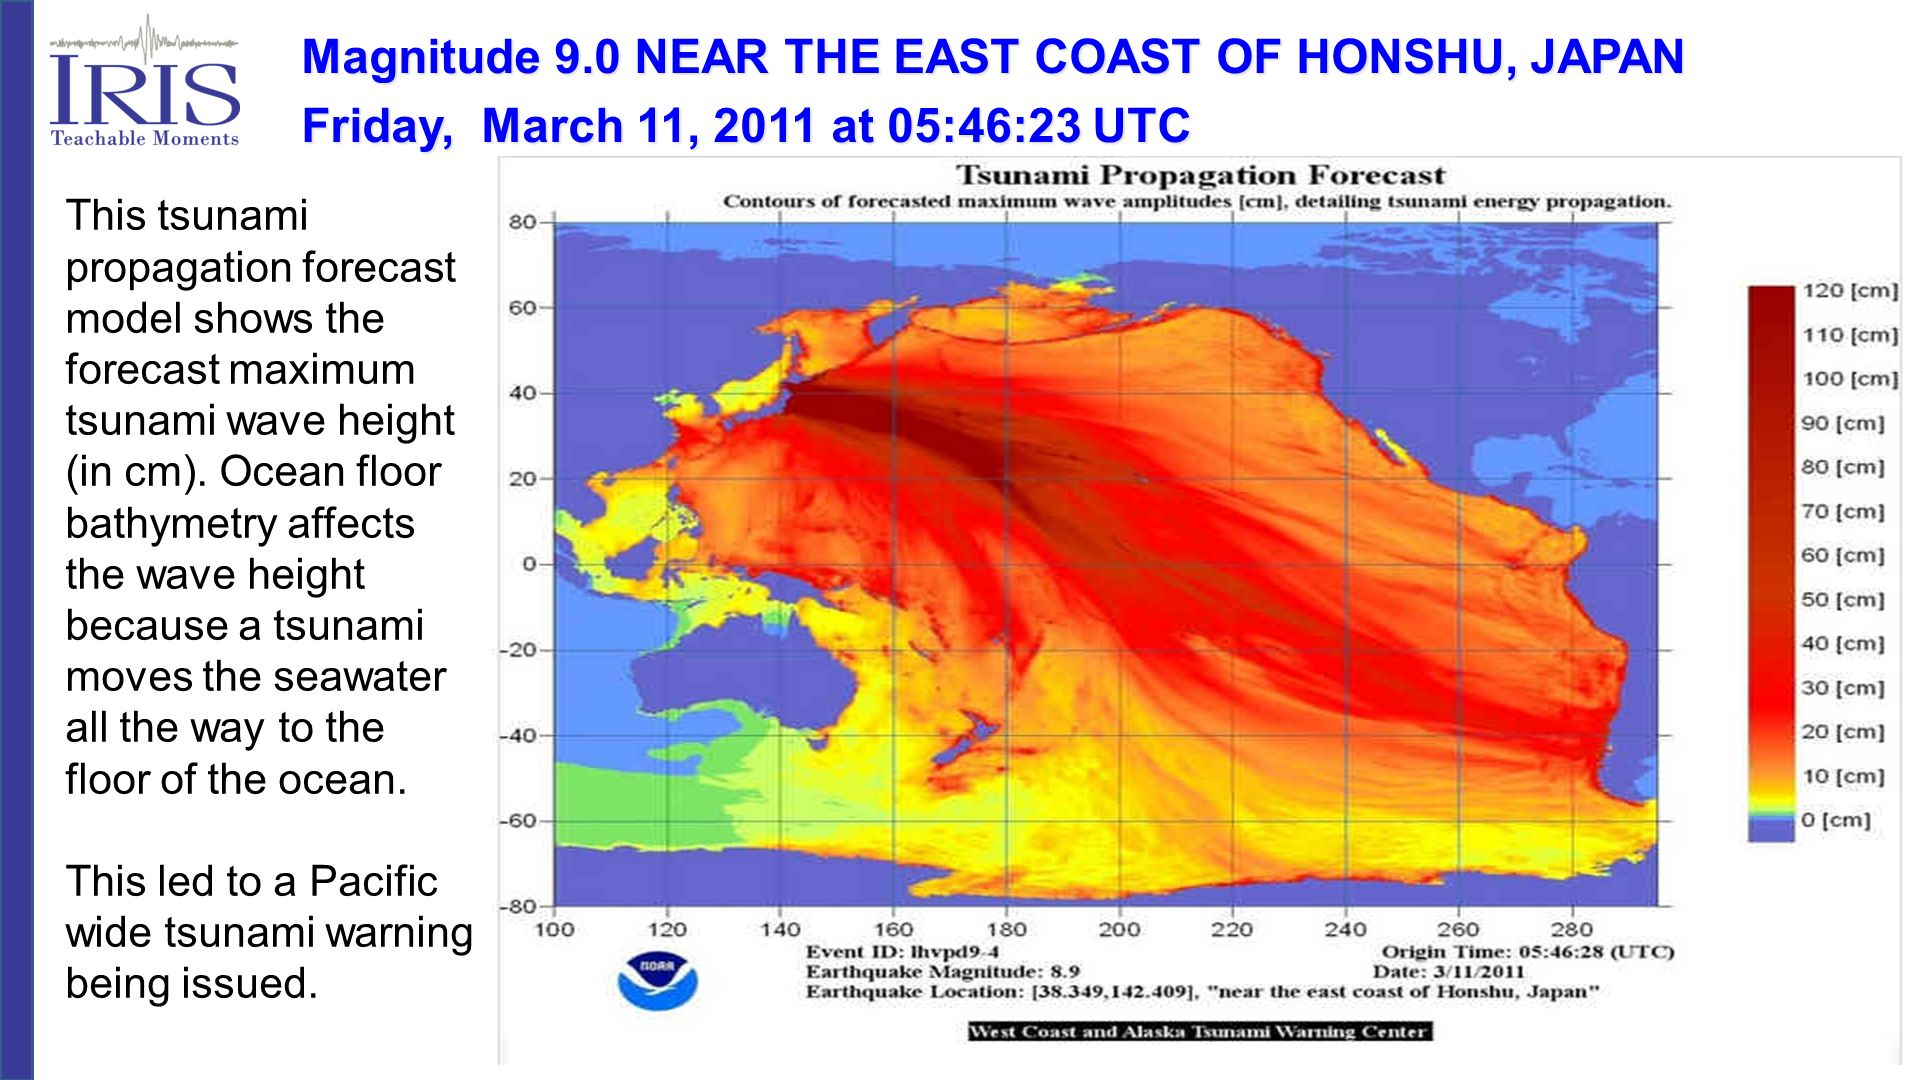 This tsunami propagation forecast model shows the forecast maximum tsunami wave height (in cm). Ocean floor bathymetry affects the wave height because